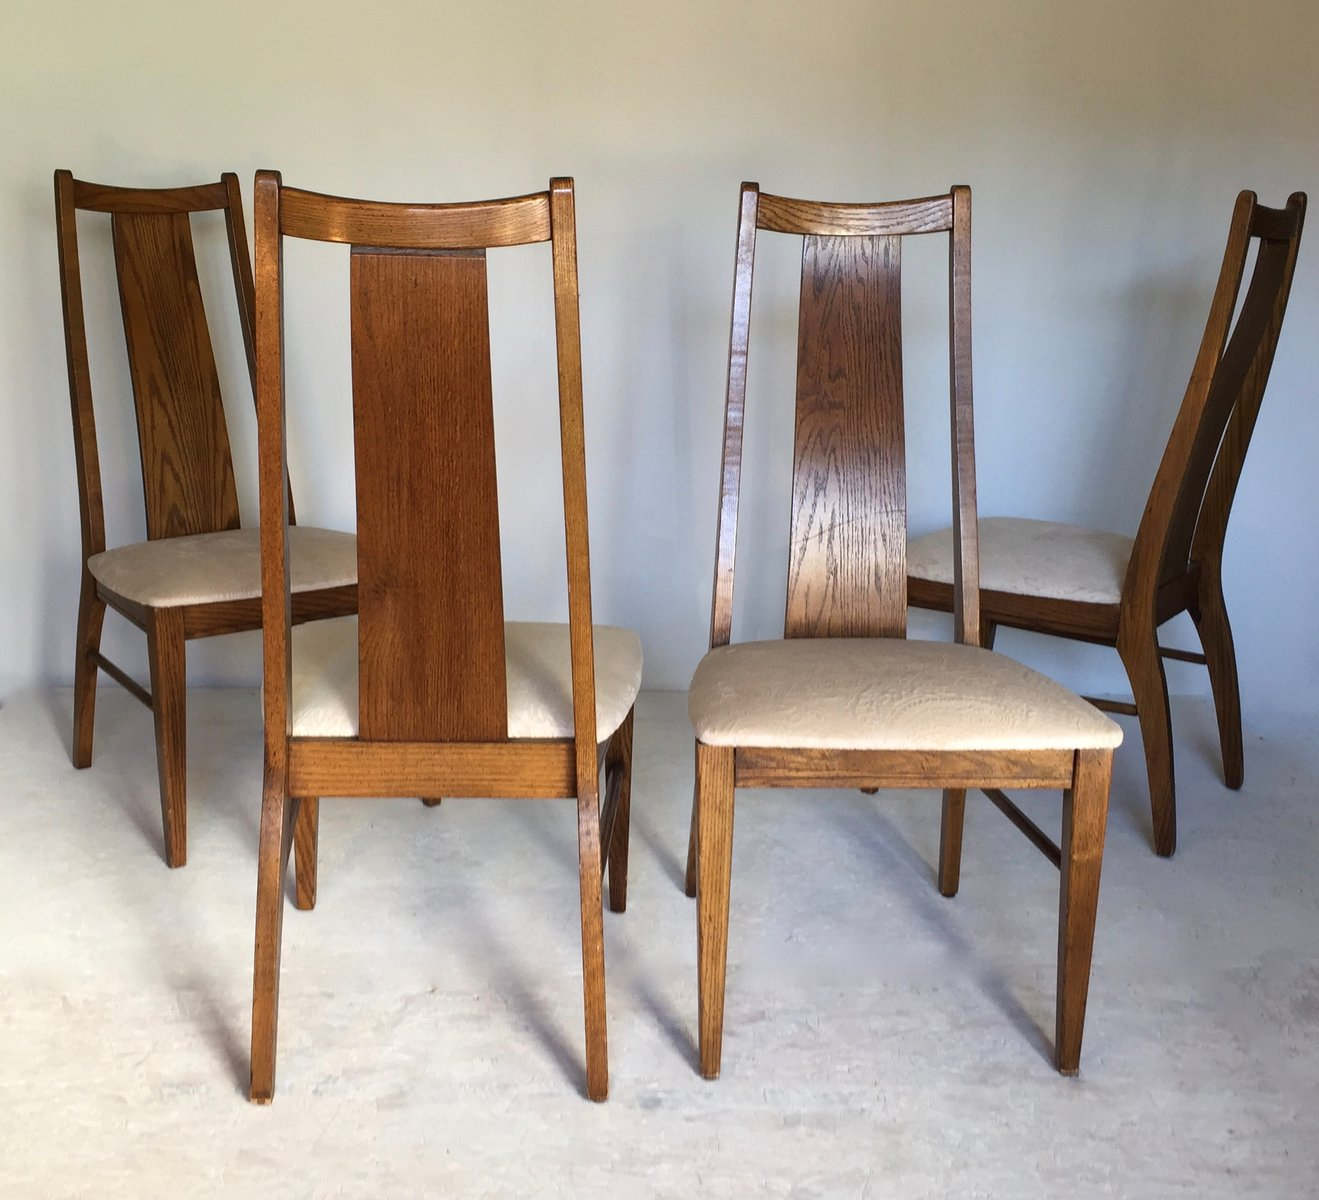 Furniture Corp: American Chairs From Garrison Furniture Company, 1960s